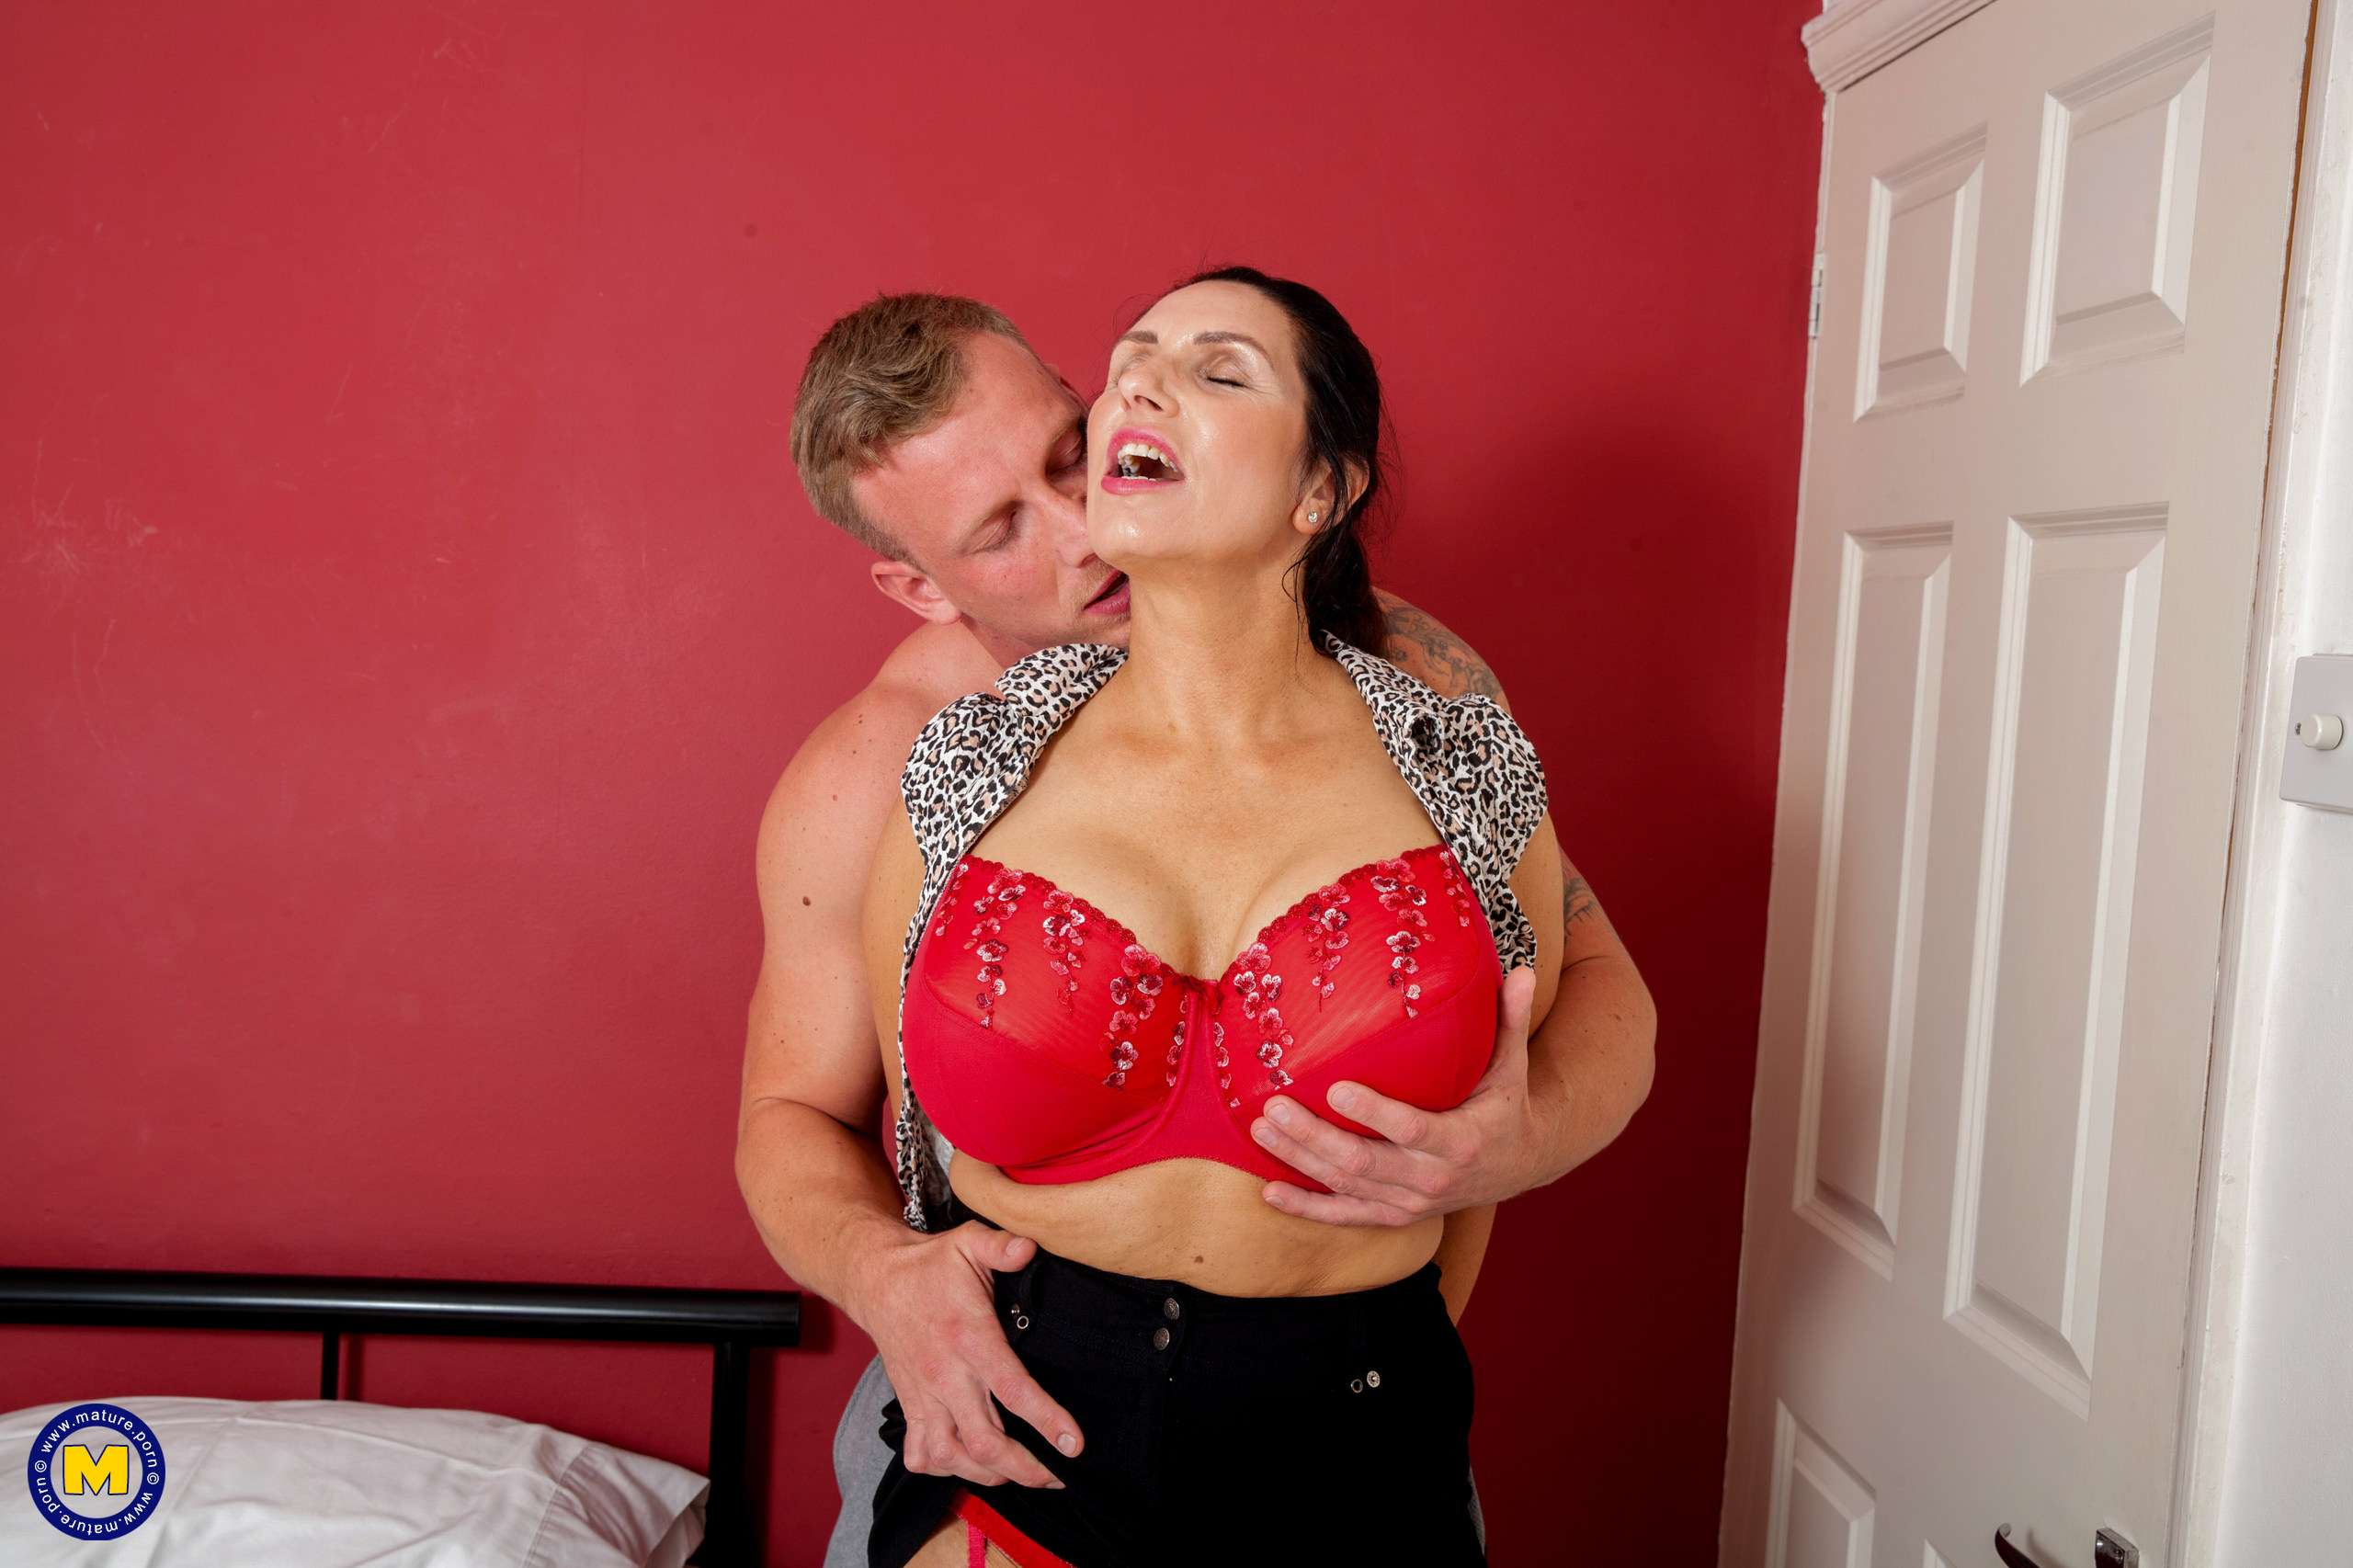 Big breasted Josephine James housewife going all the way with her lover